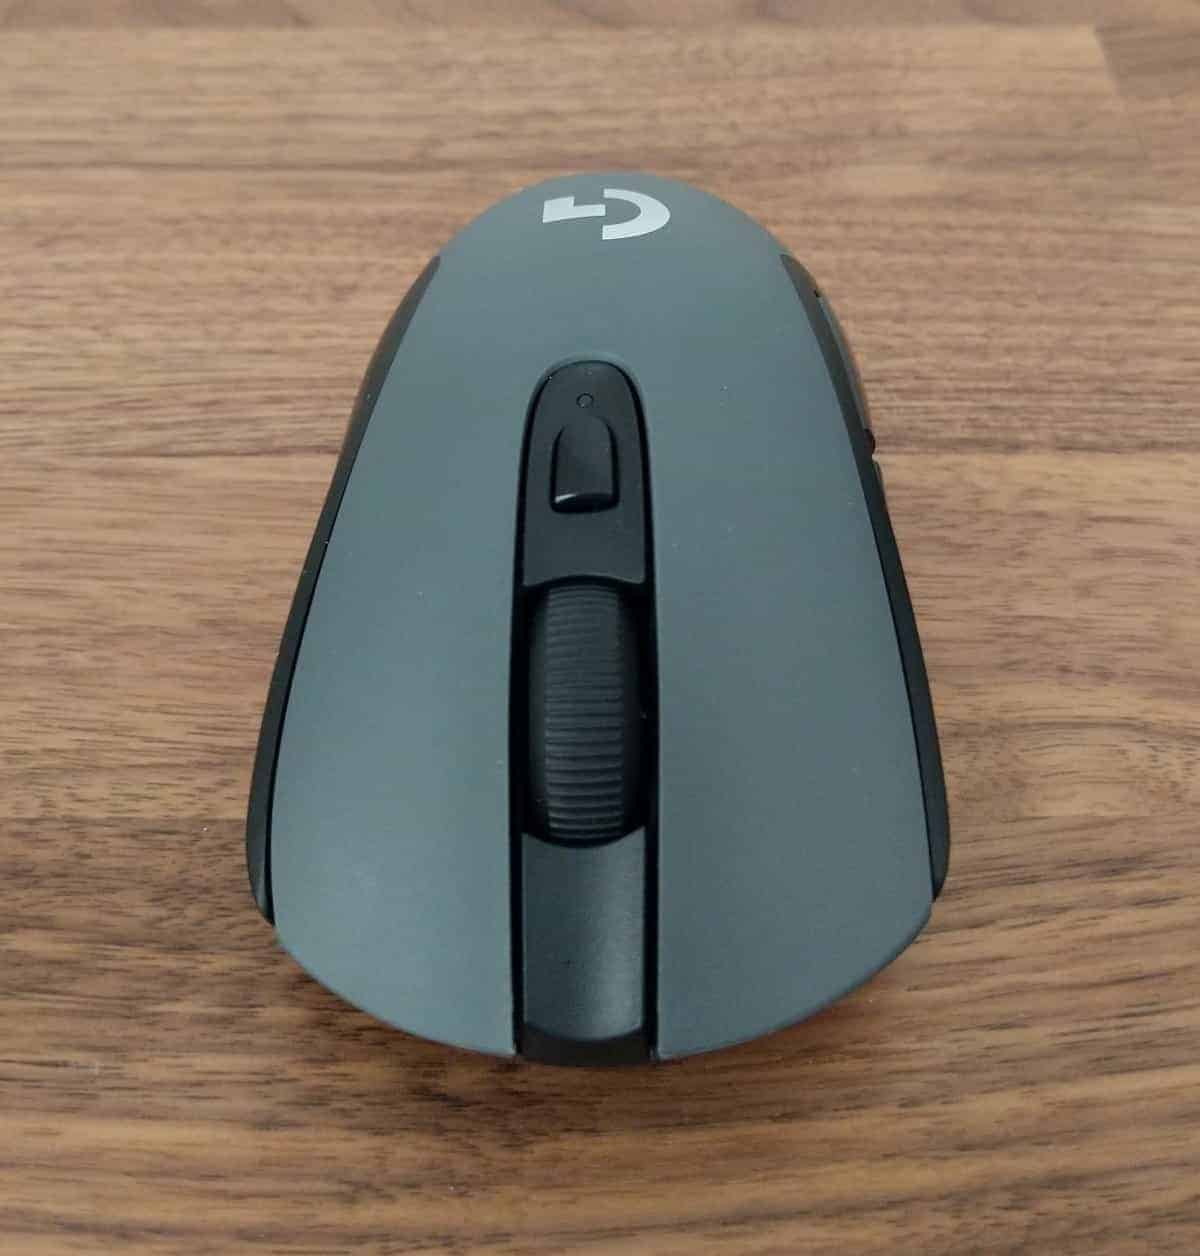 Logitech Mouse Not Pairing